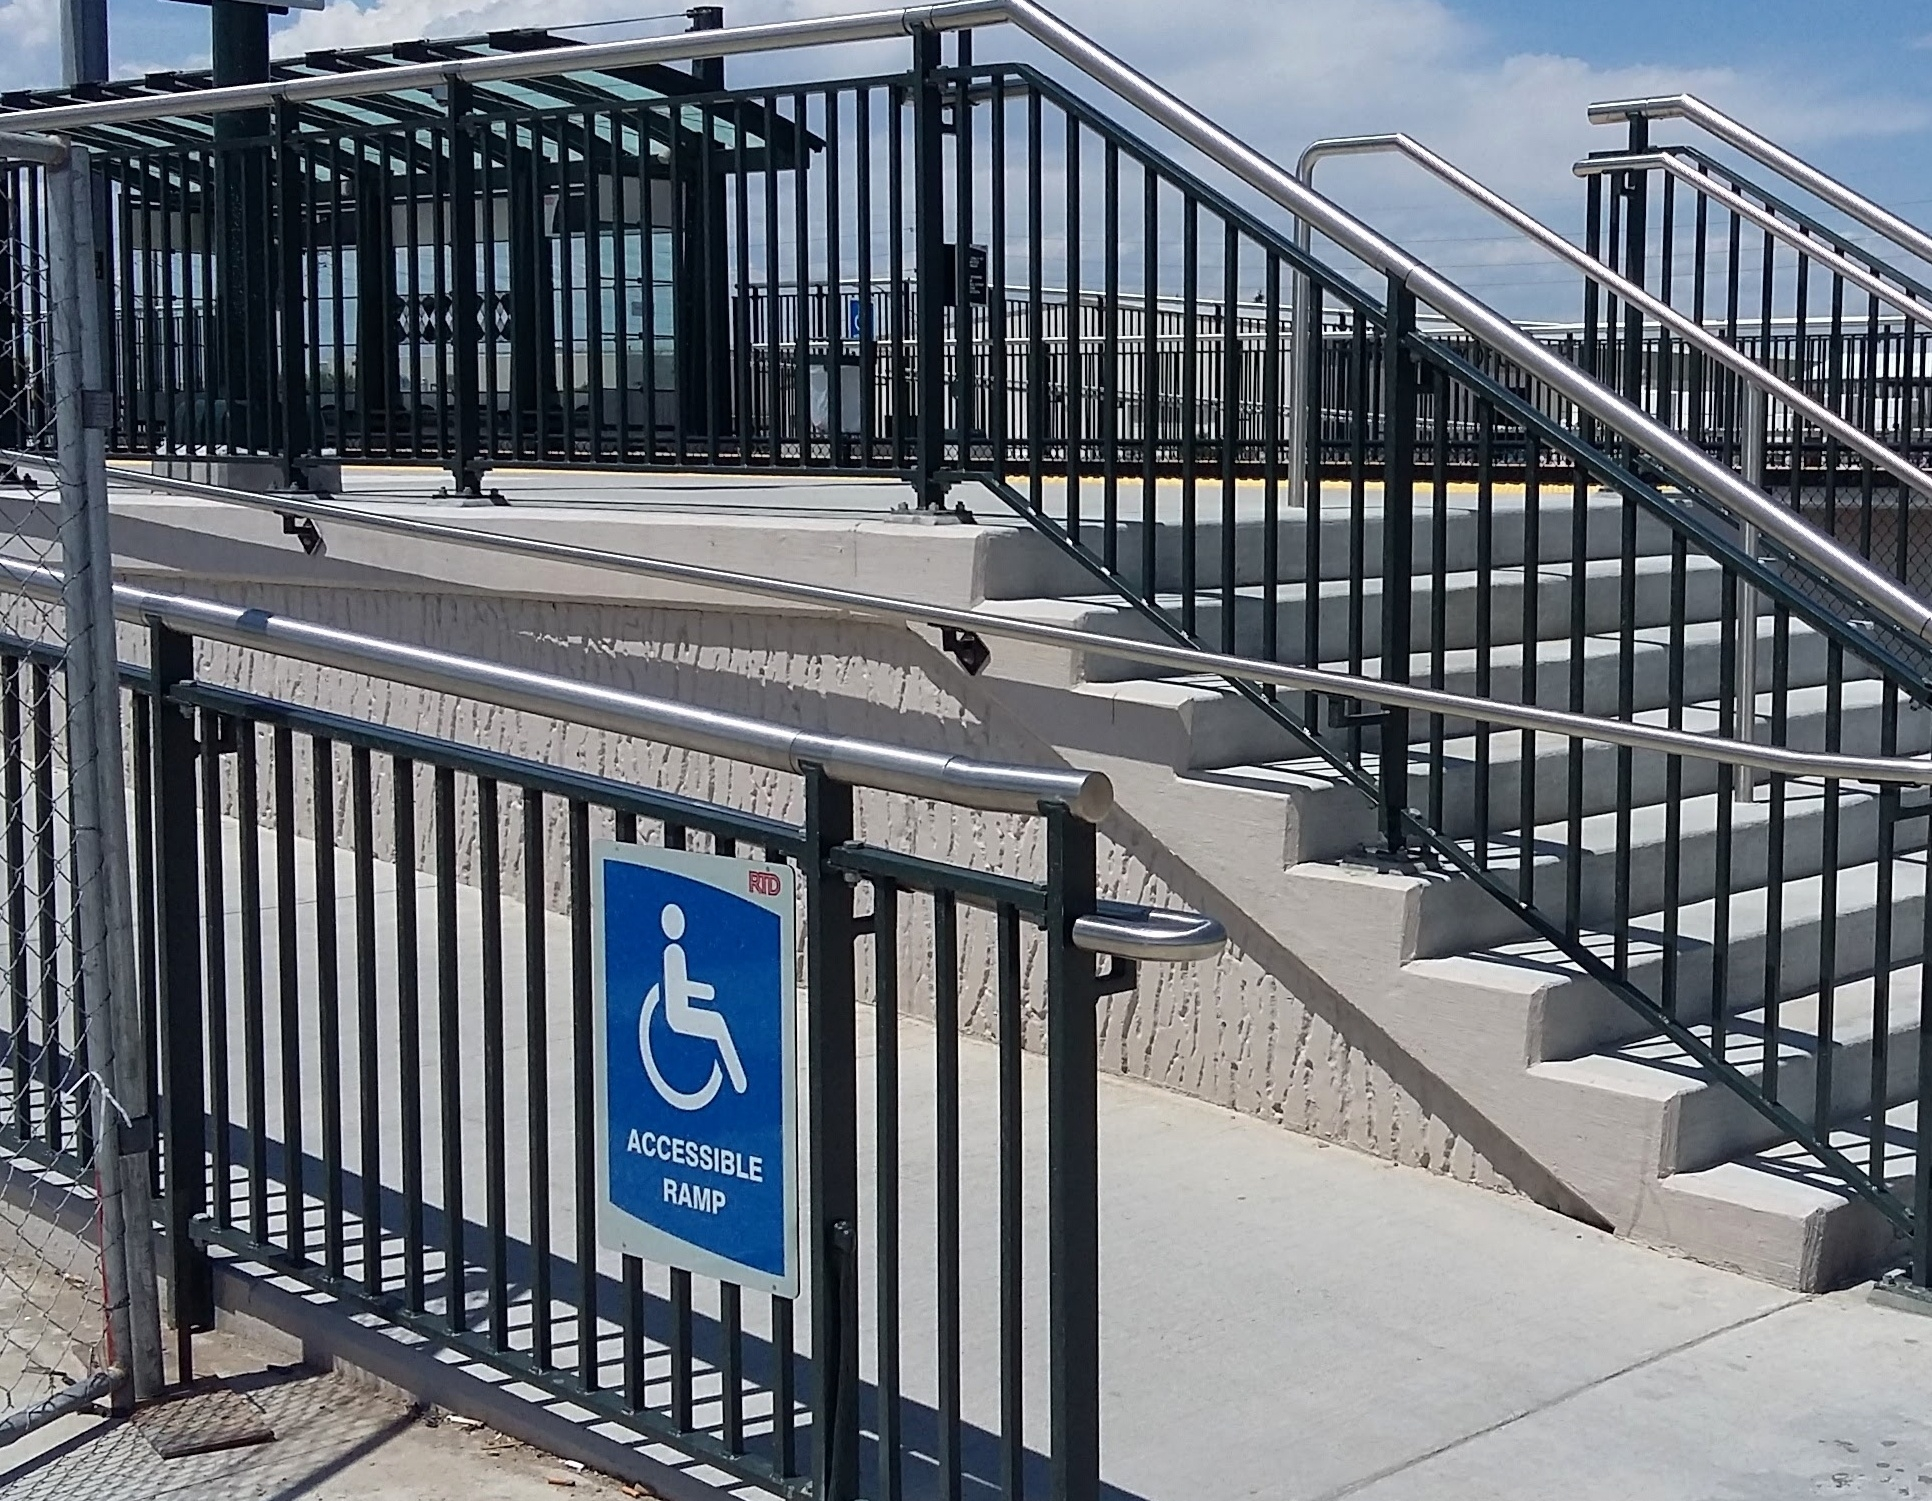 Are You Complying With The Ada S Handrail Requirements | Handicap Rails For Steps | Deck | Wheelchair Ramp | Activated Led | Adjustable Height | Bed